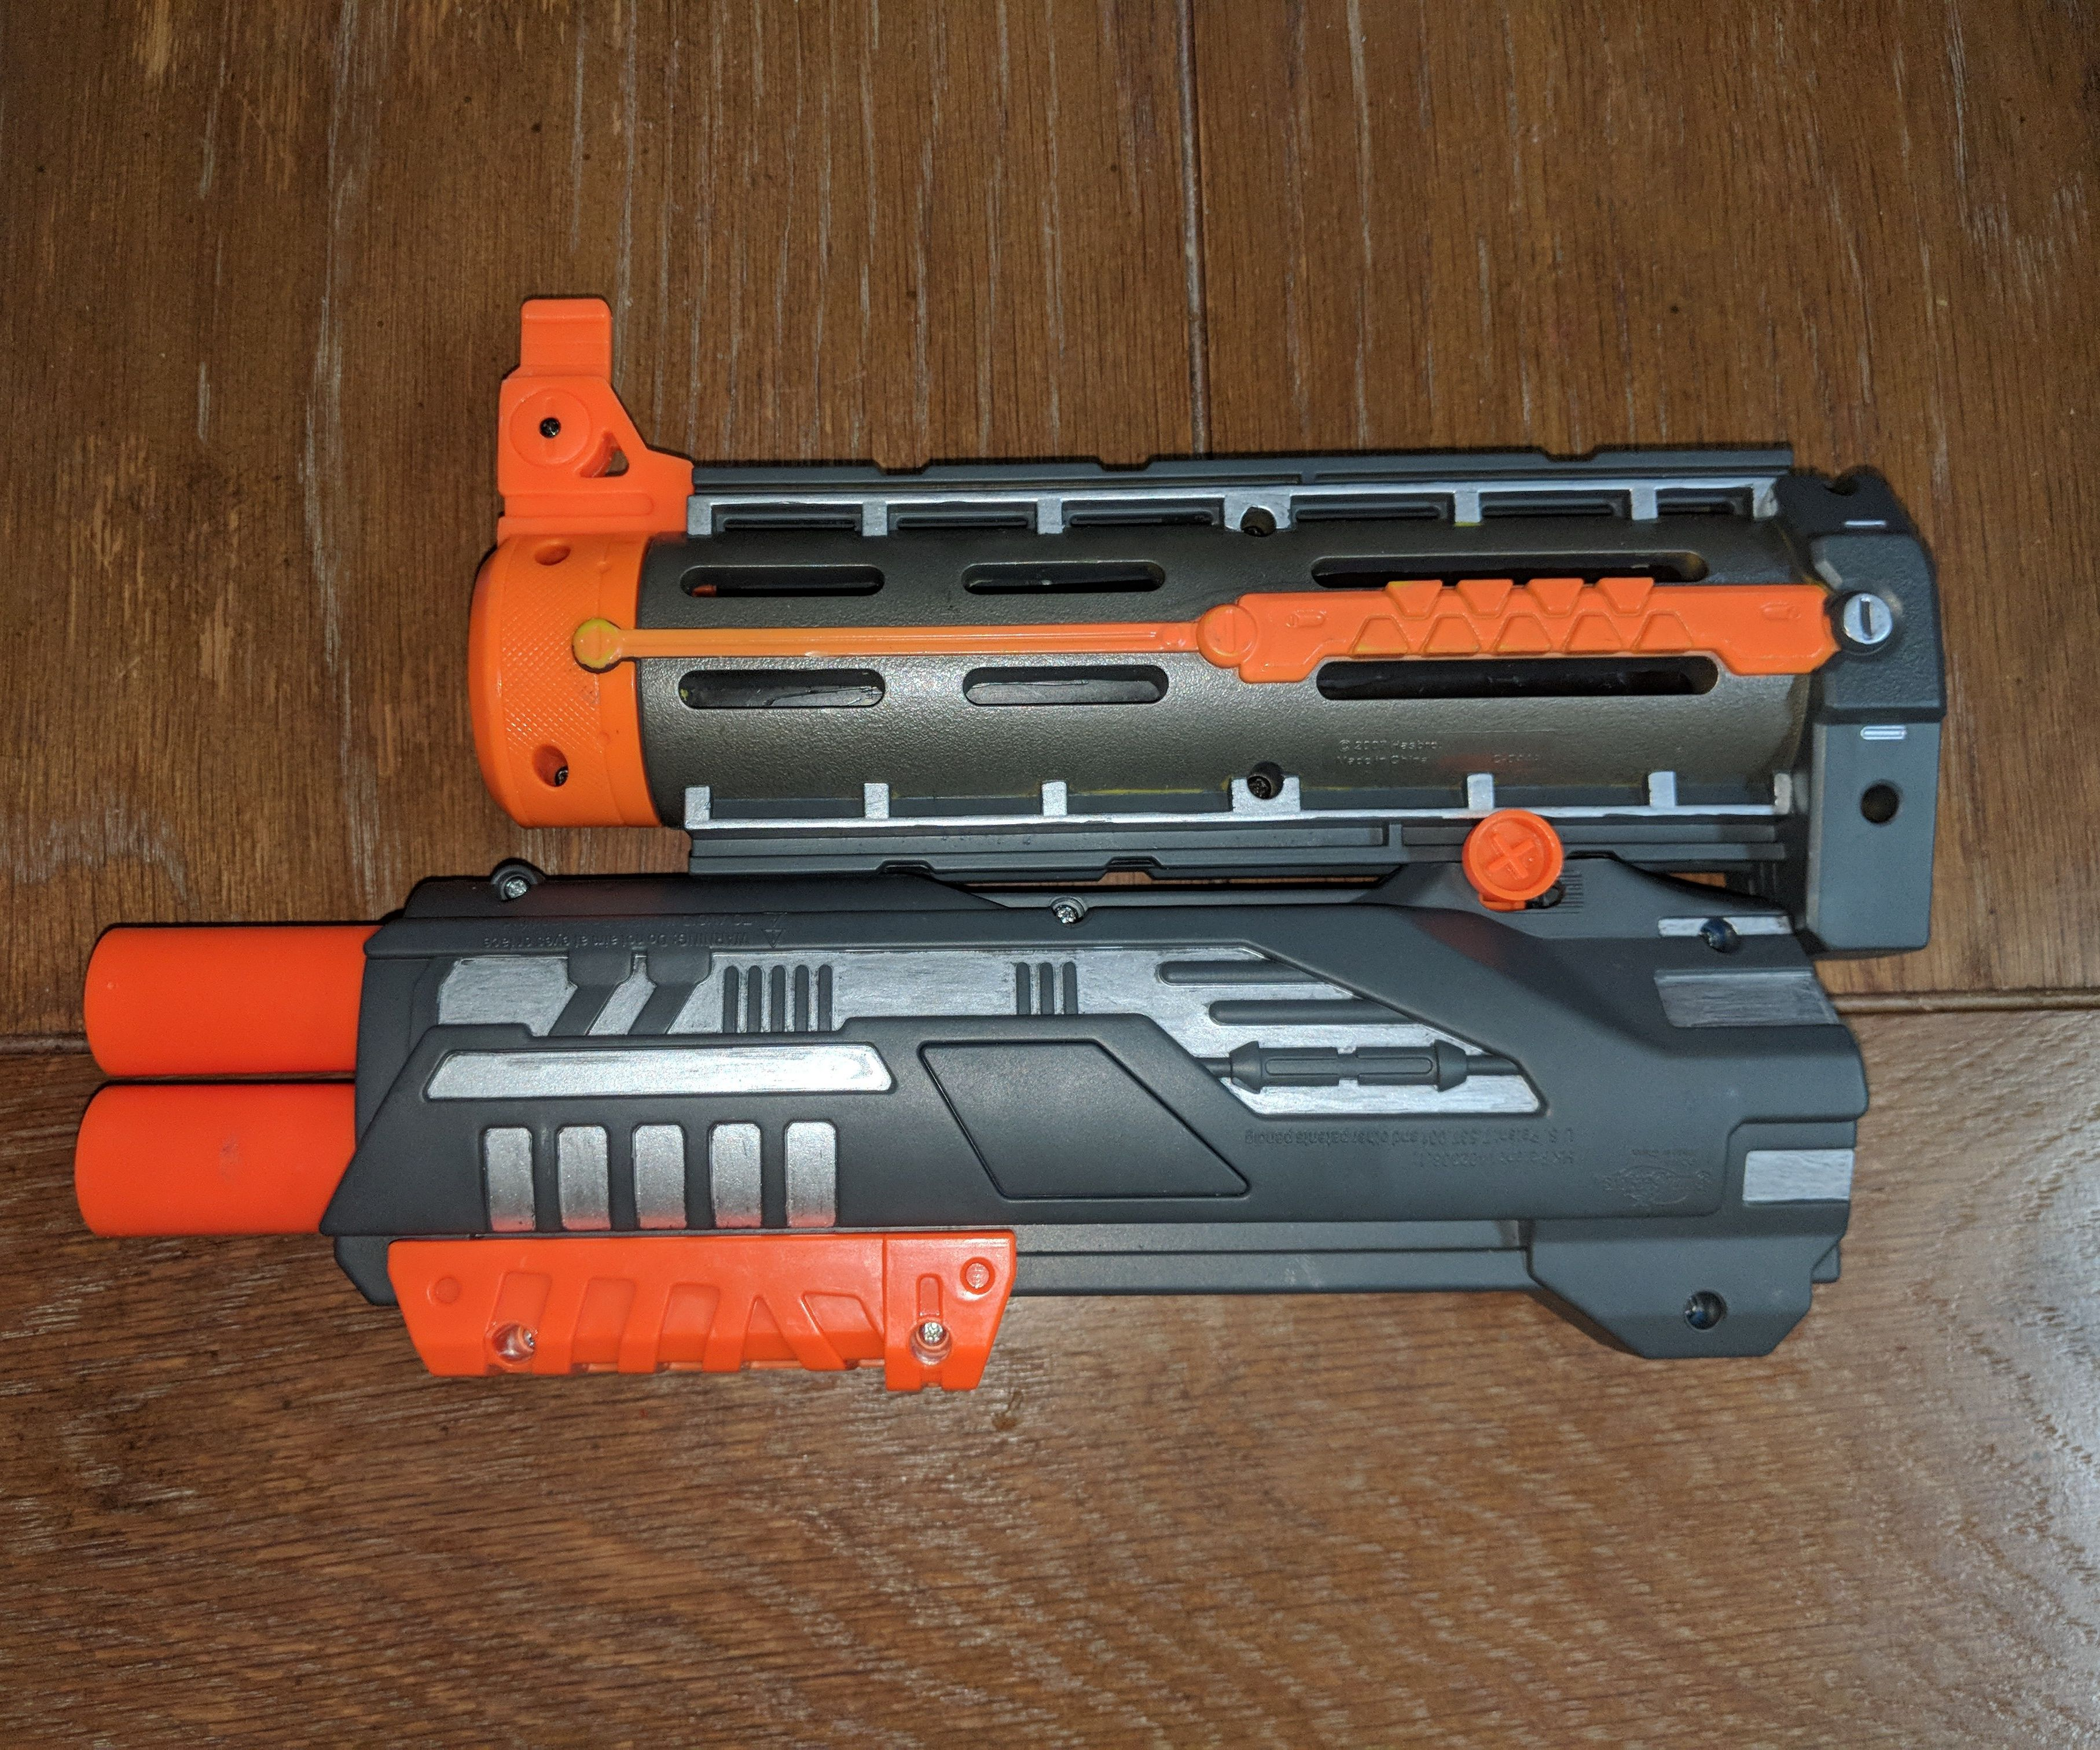 Nerf Barrel Attachment With Under-mounted Mega Blaster